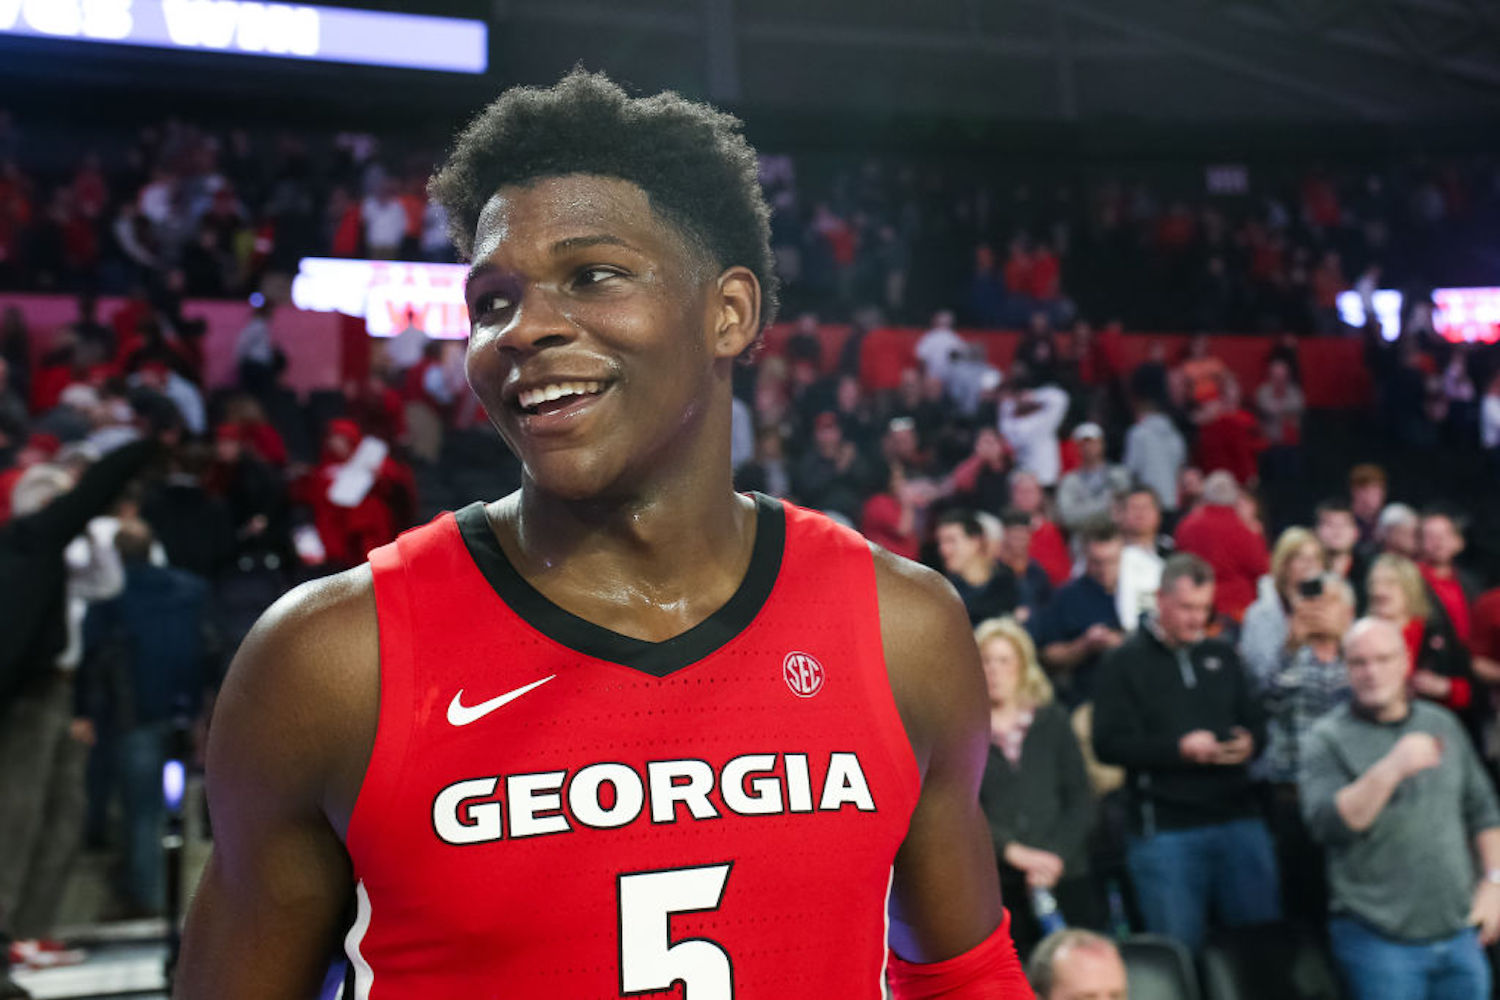 Anthony Edwards is projected to be a top-three NBA draft pick in 2020. Here's everything you need to know about the star prospect.